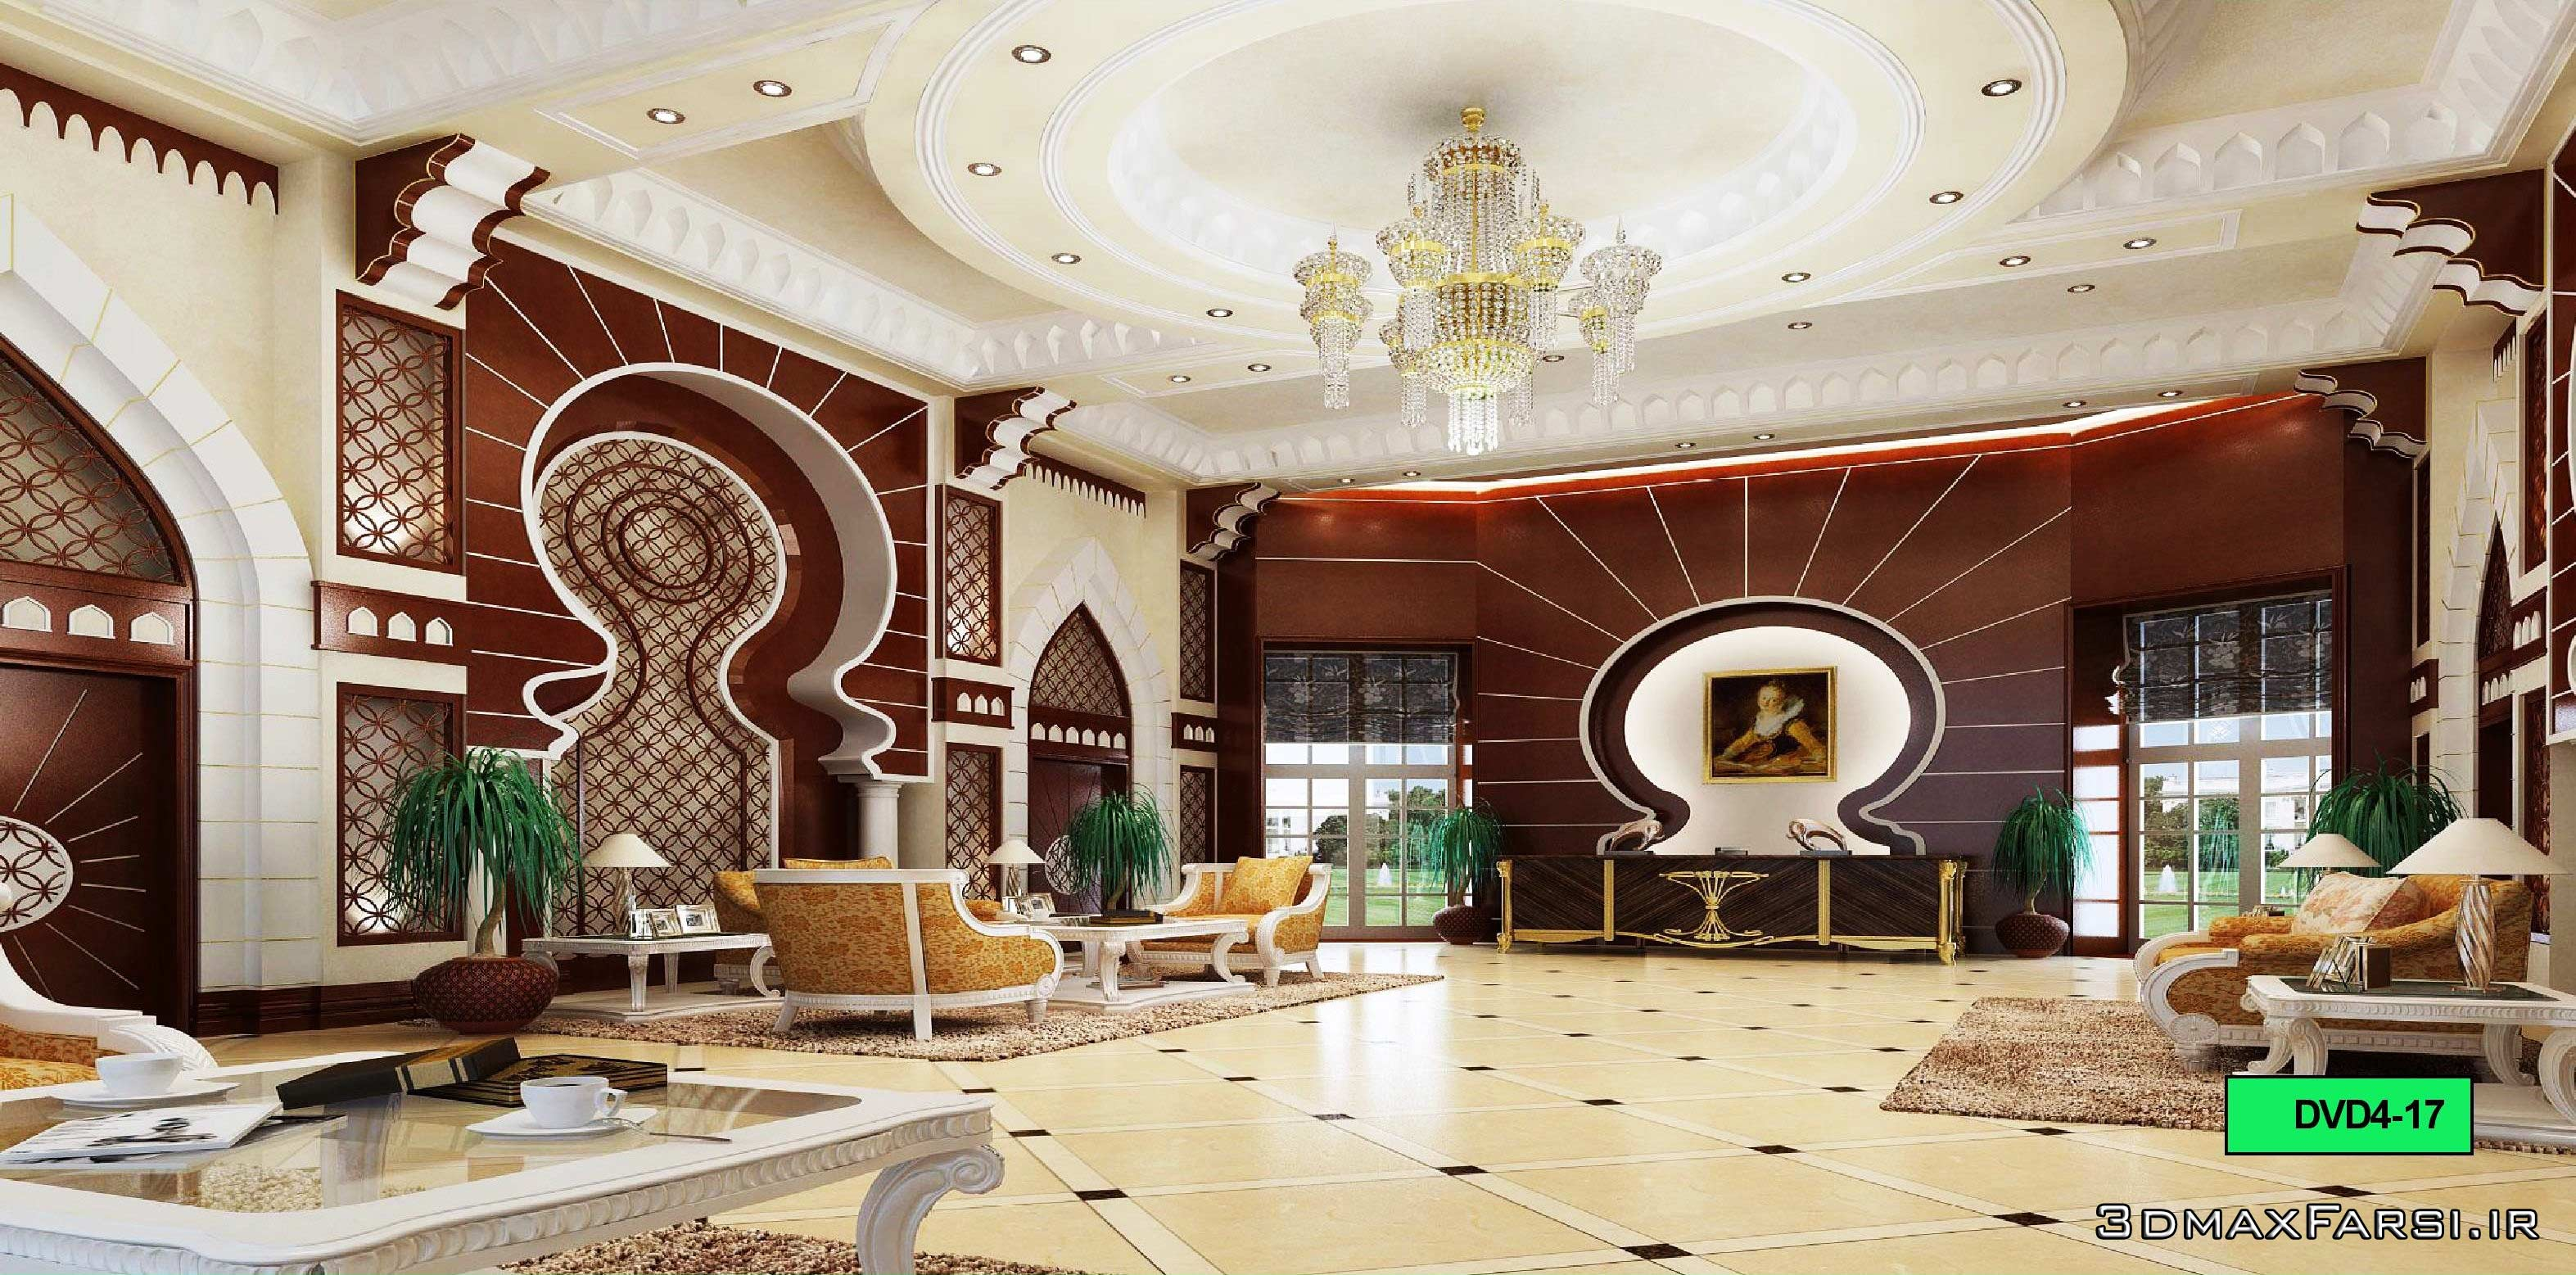 آبجکت جدید مکس ویری Global Masterwork Model Base Decoration